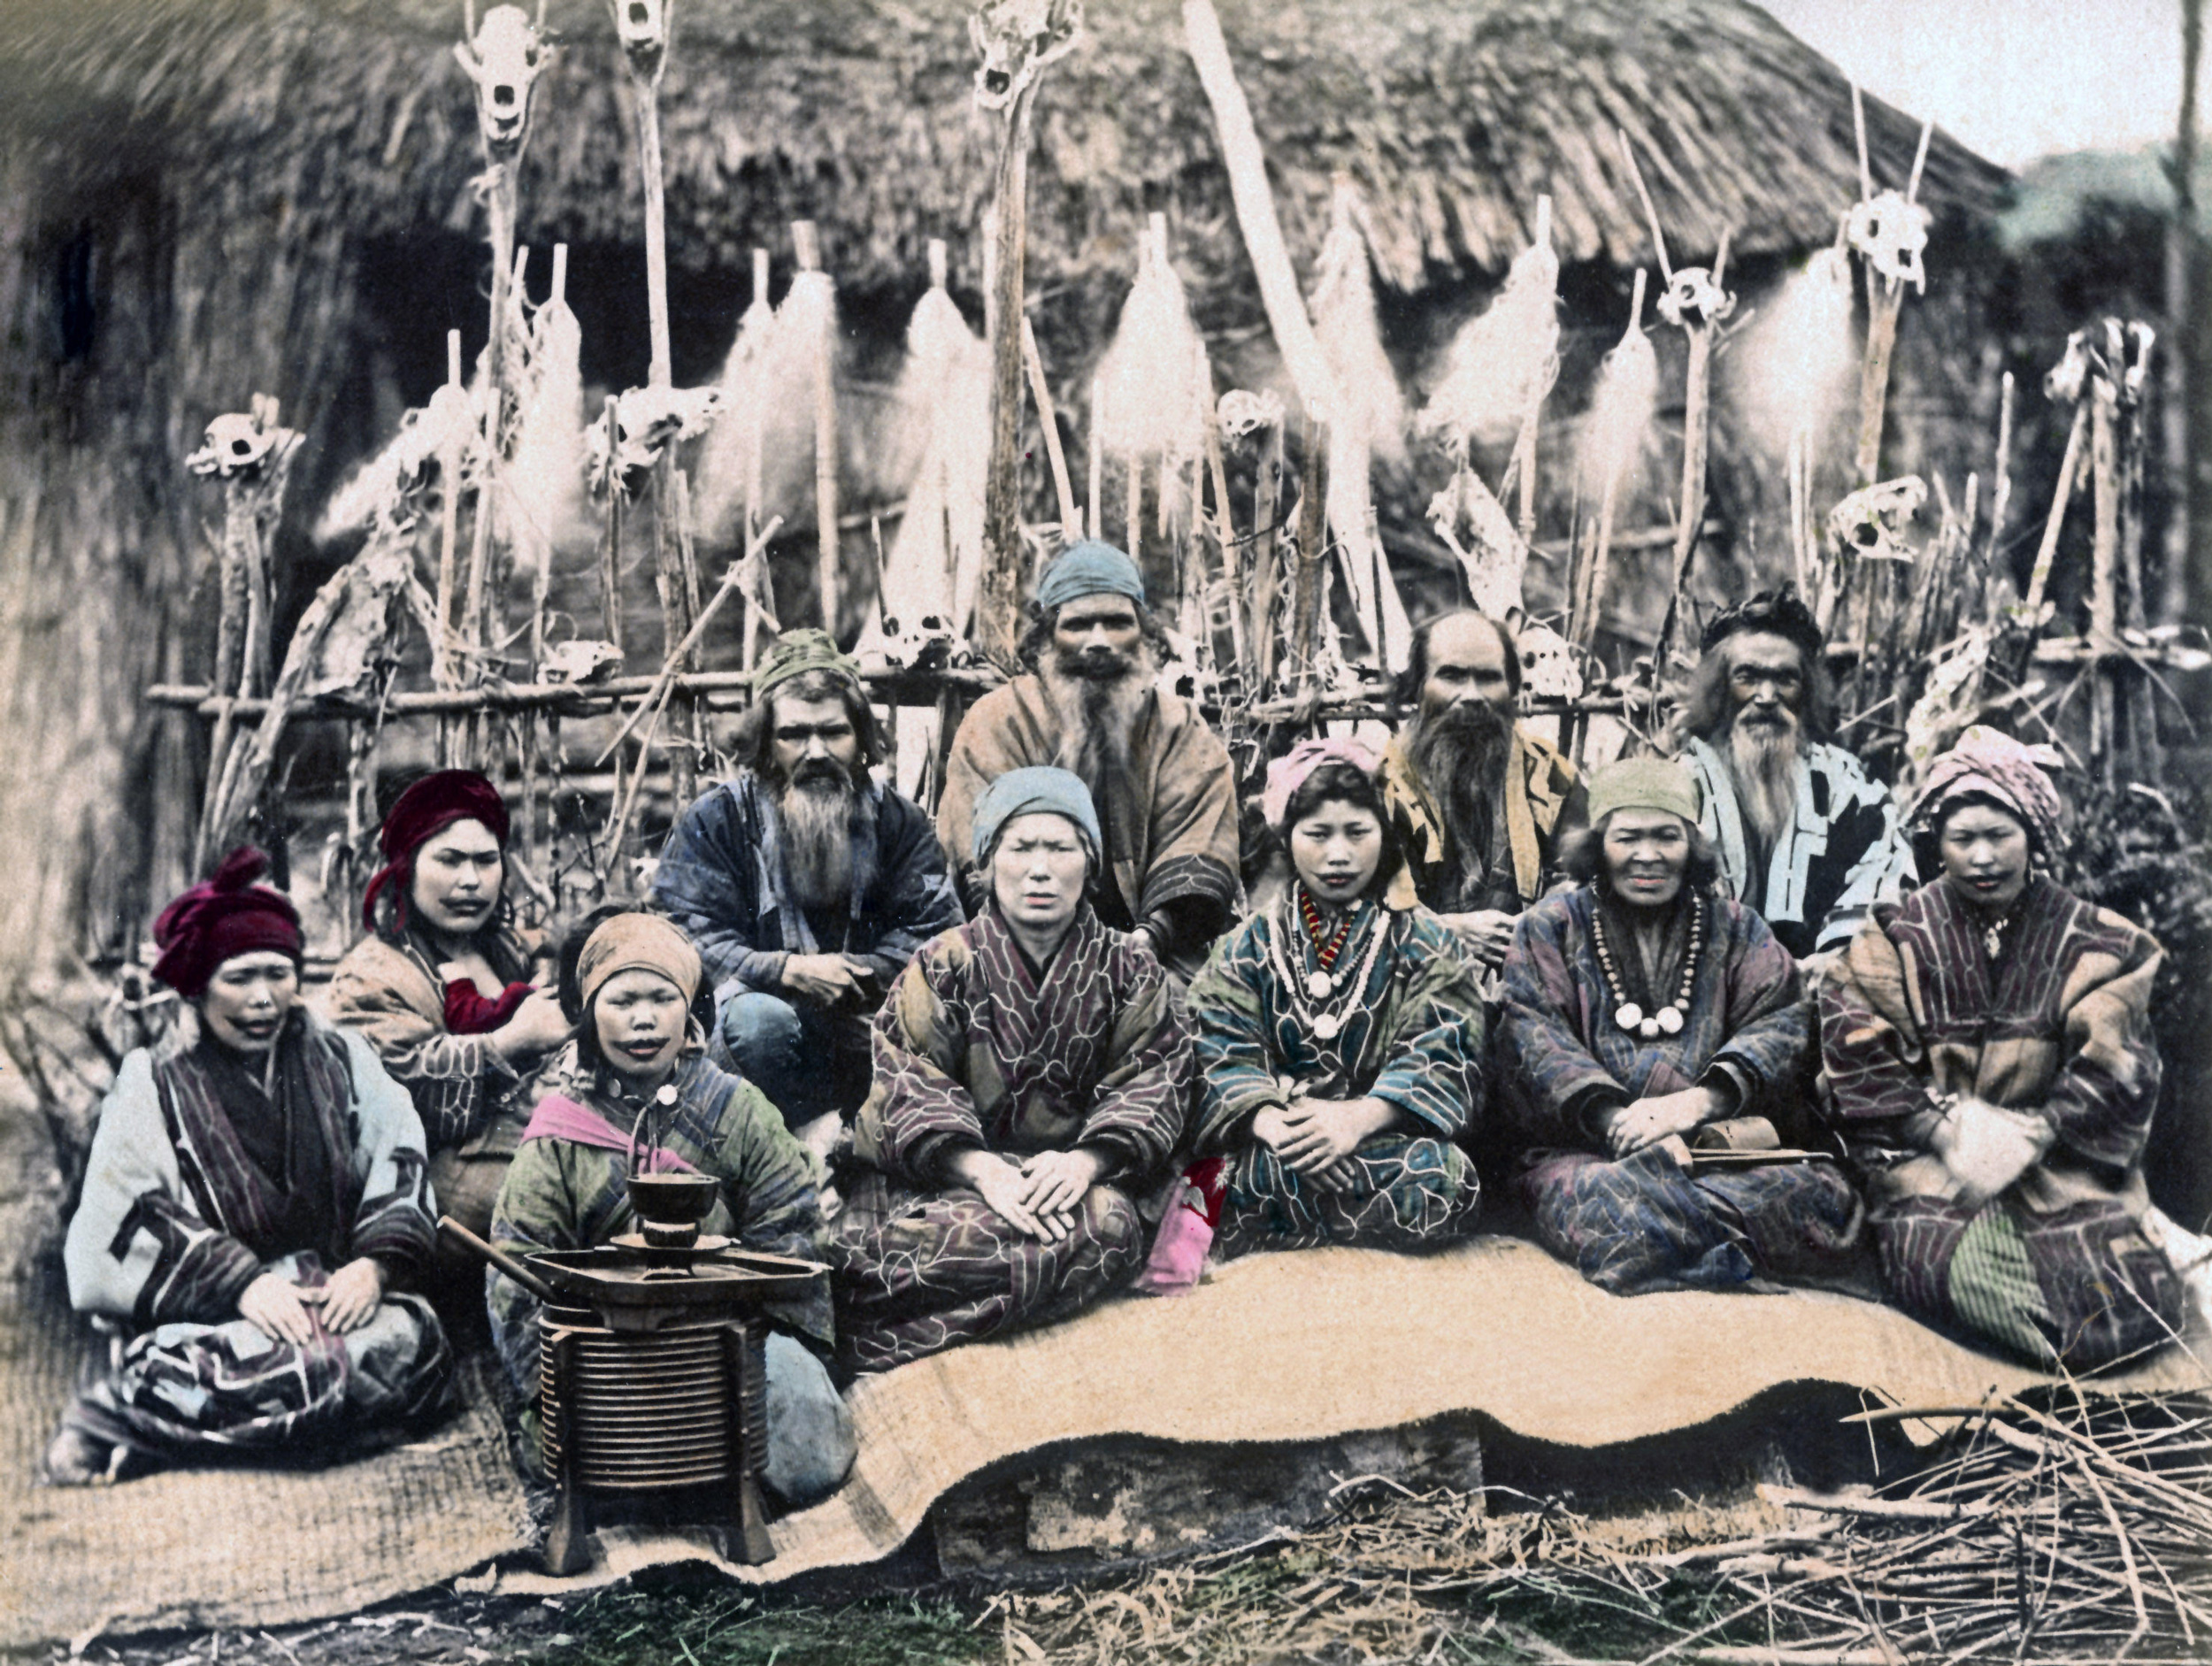 ainu people The ainu, the original muurs of japan and russia the ainu are the indigenous peoples of japan and far east russia although the true number of ainu descendants living in japan is unknown, it is believed that only 200 pure blood ainu remain, most of these upon japan's northernmost island of hokkaido.